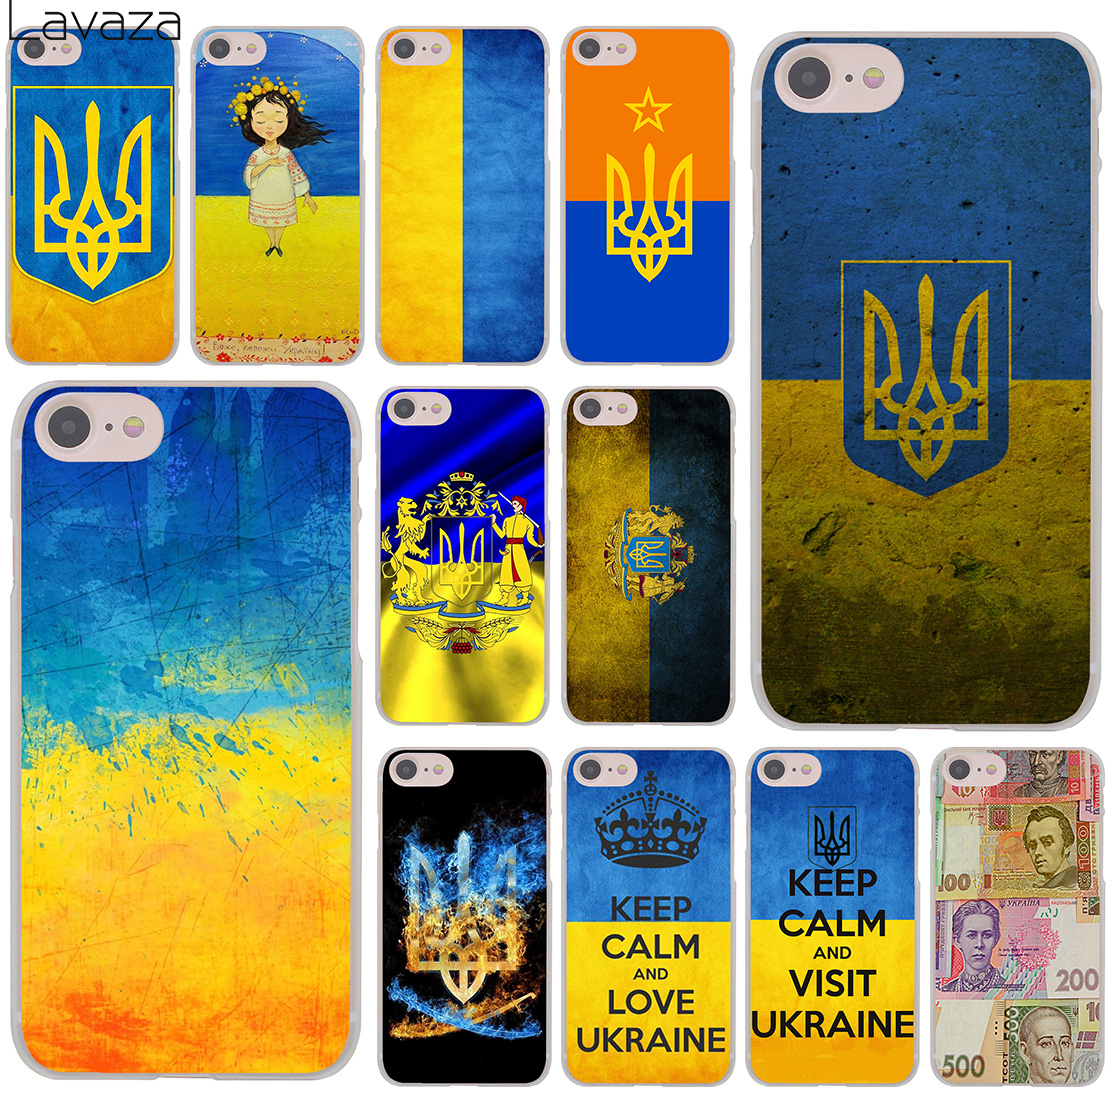 d1596863c88a8f Lavaza keep calm and visit ukraine Of Flag Hard Cover Case for iPhone X XS  Max XR 6 6S 7 8 Plus 5 5S SE 5C 4S 10 Phone Cases